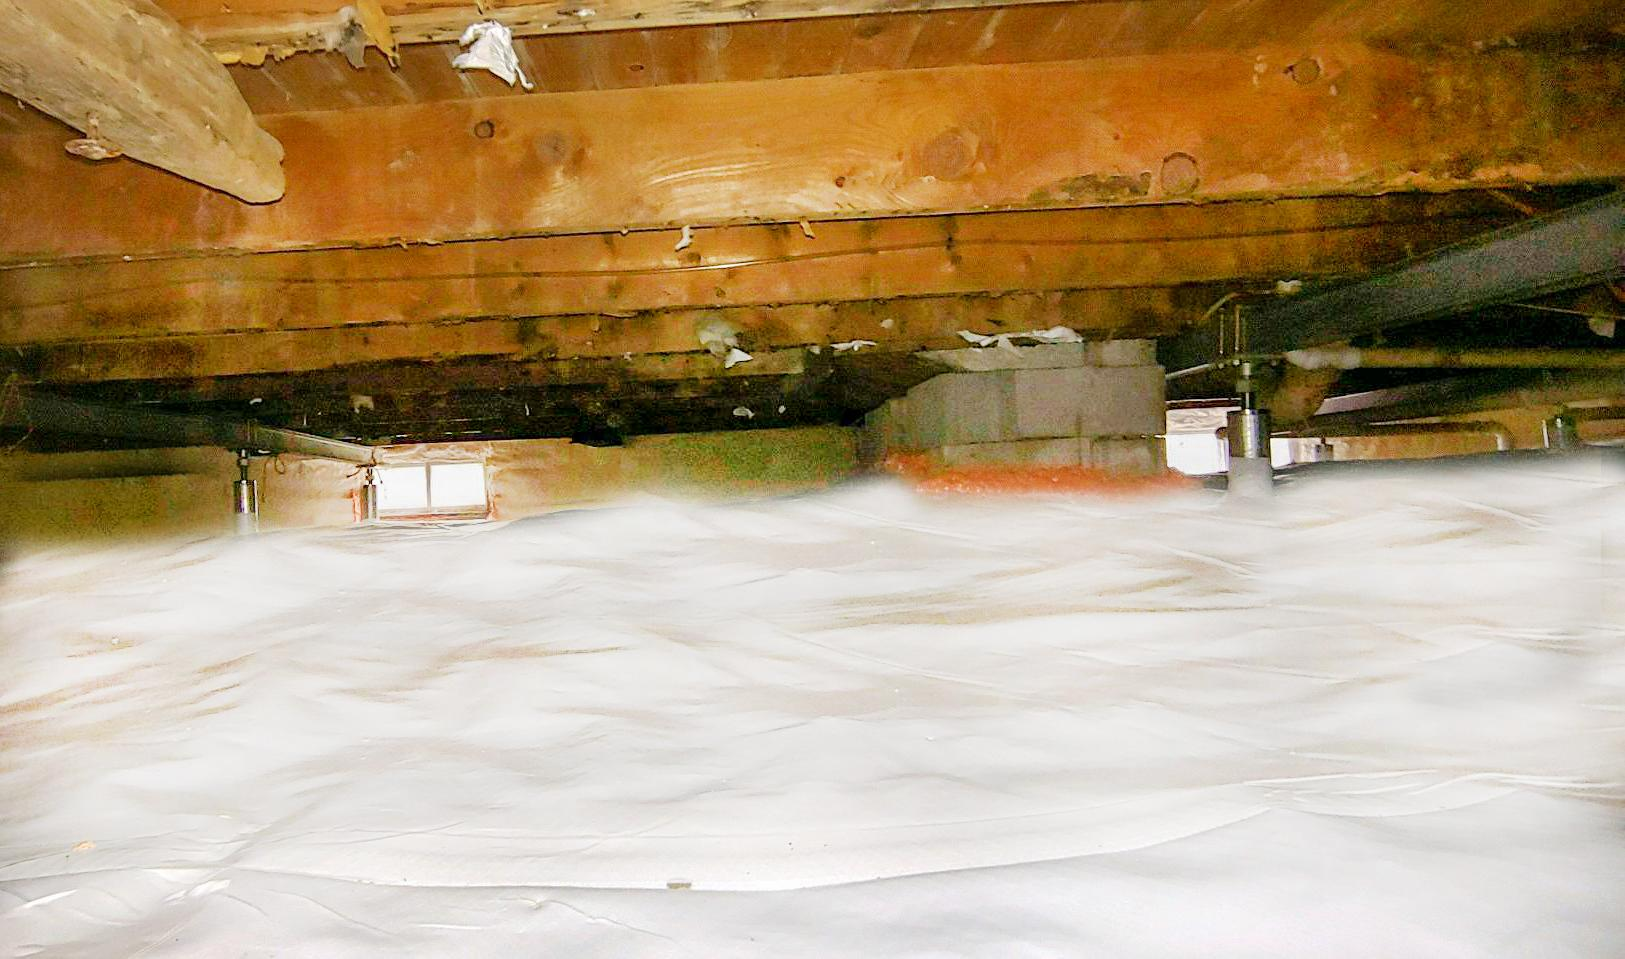 Crawl Space Repair in Colchester, Vermont - After Photo